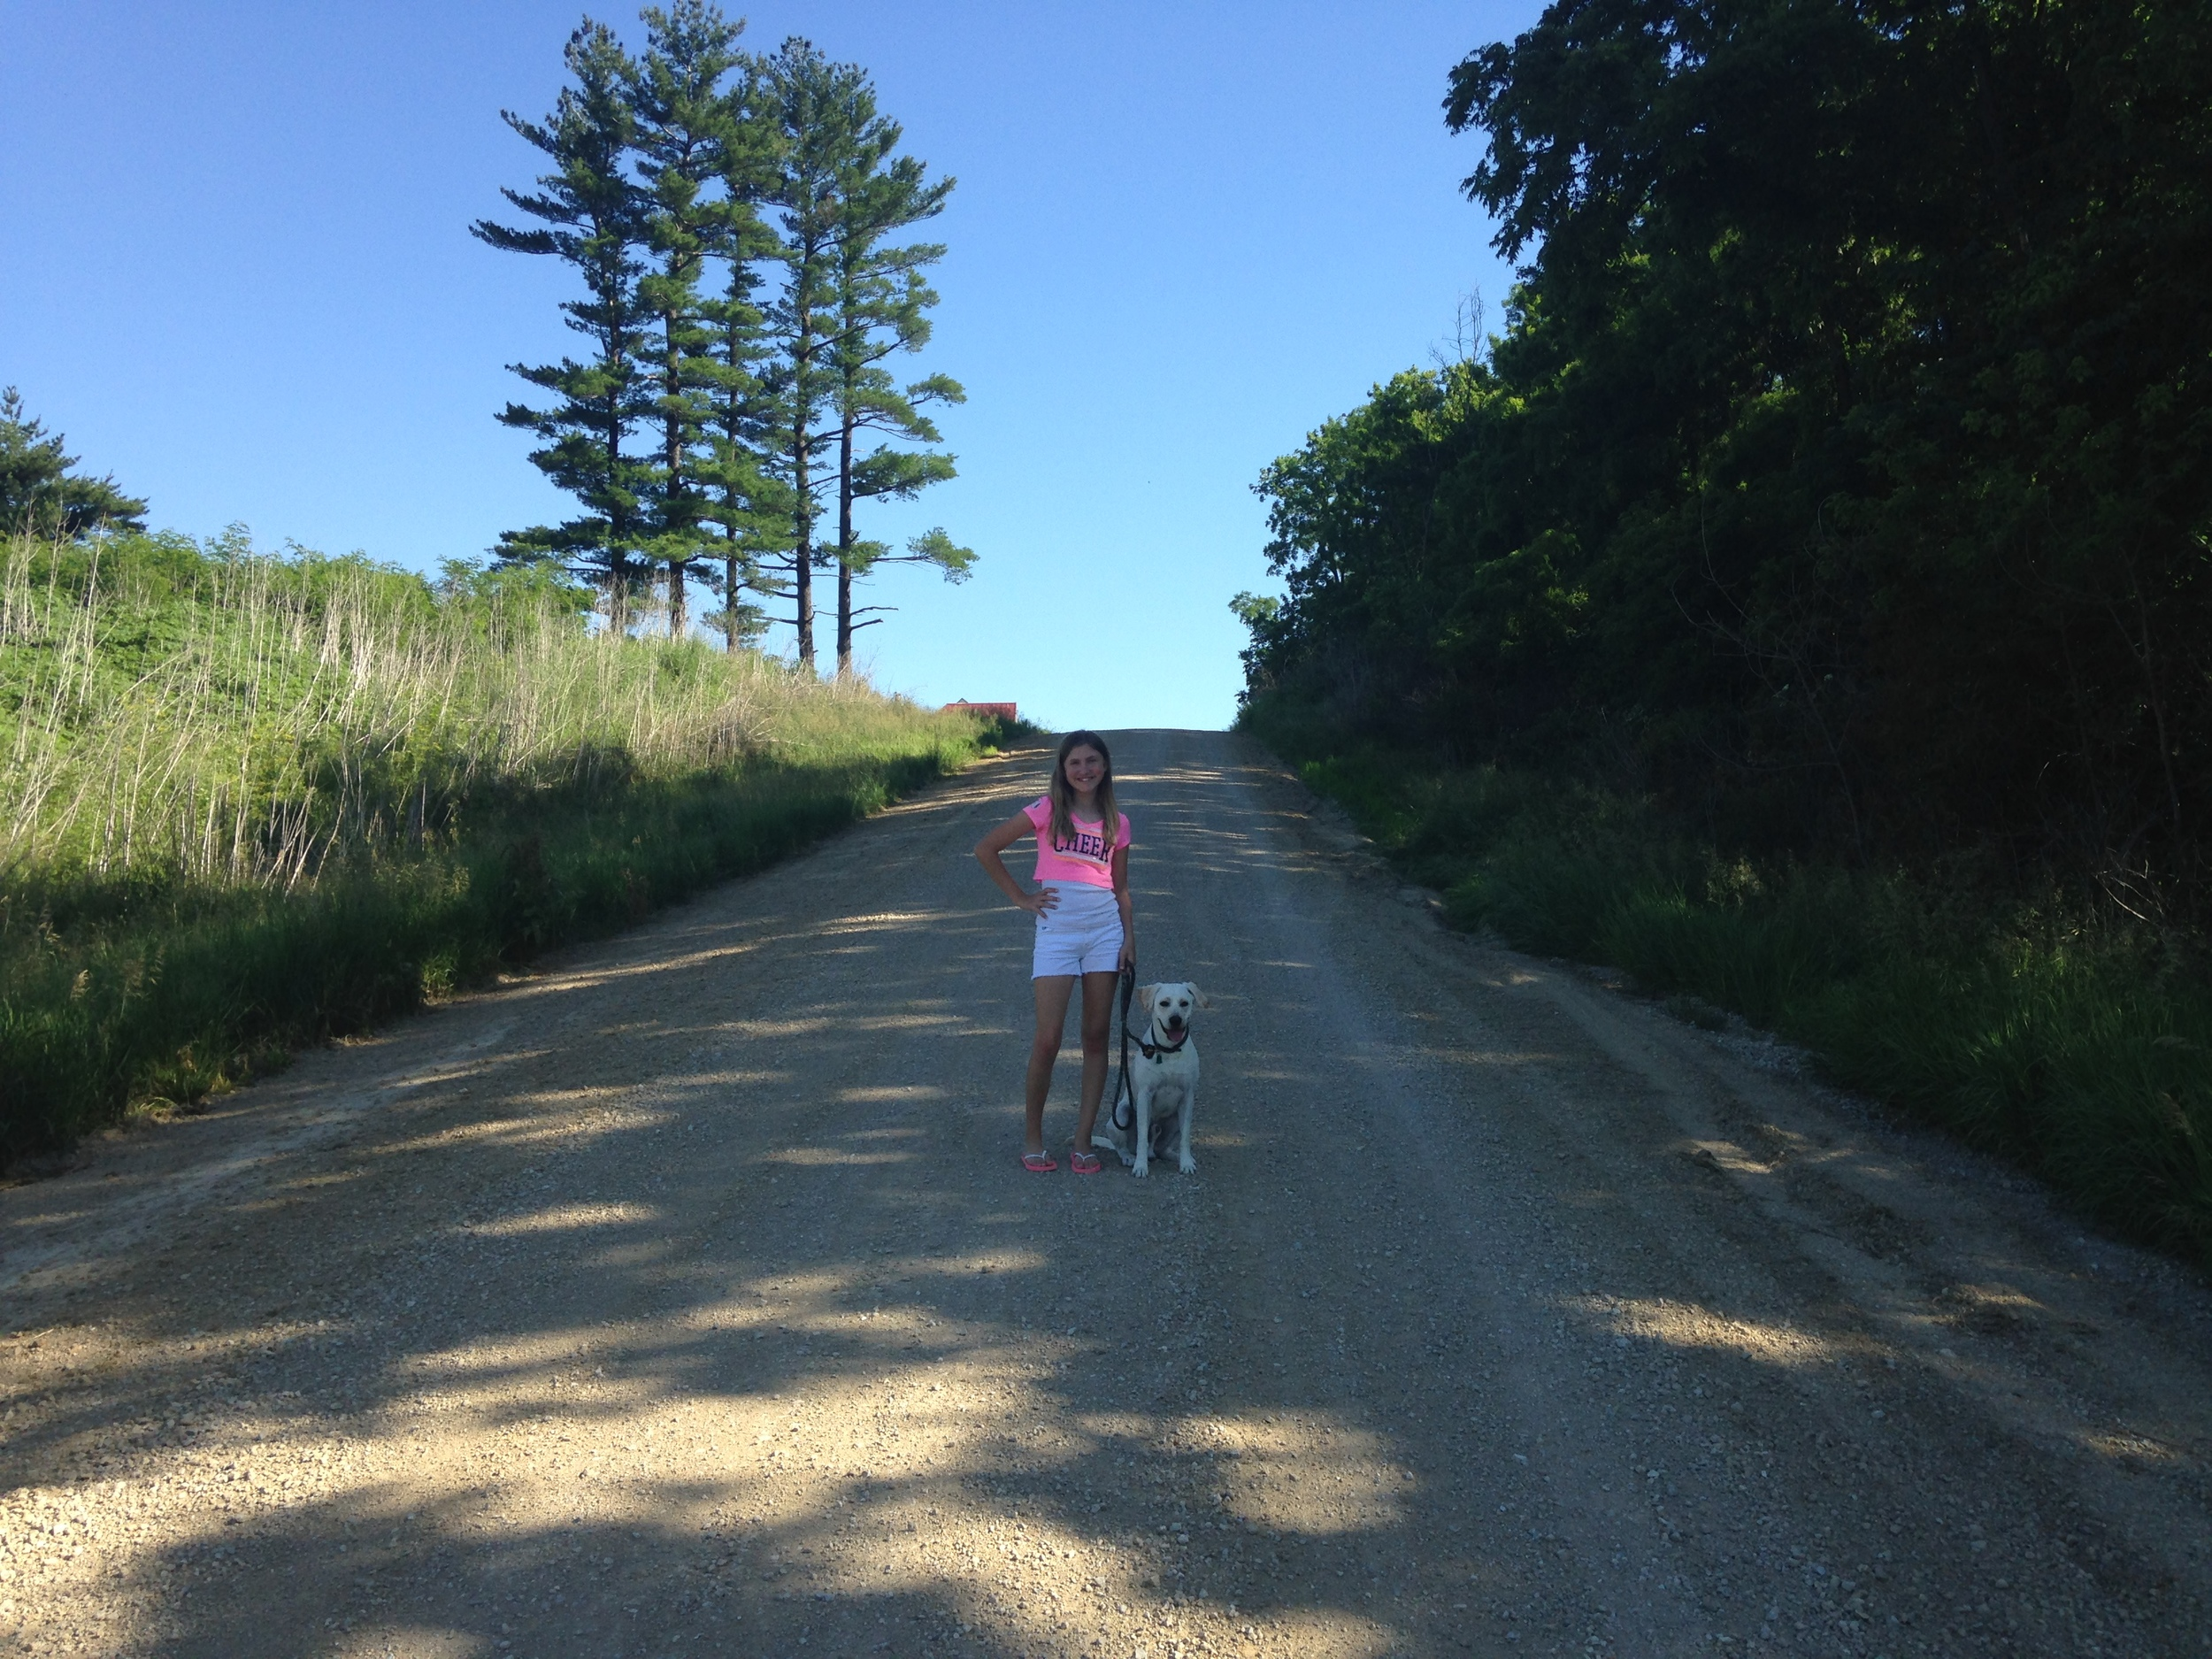 Ashlee-and-Willy-On-Gravel-Road.jpg